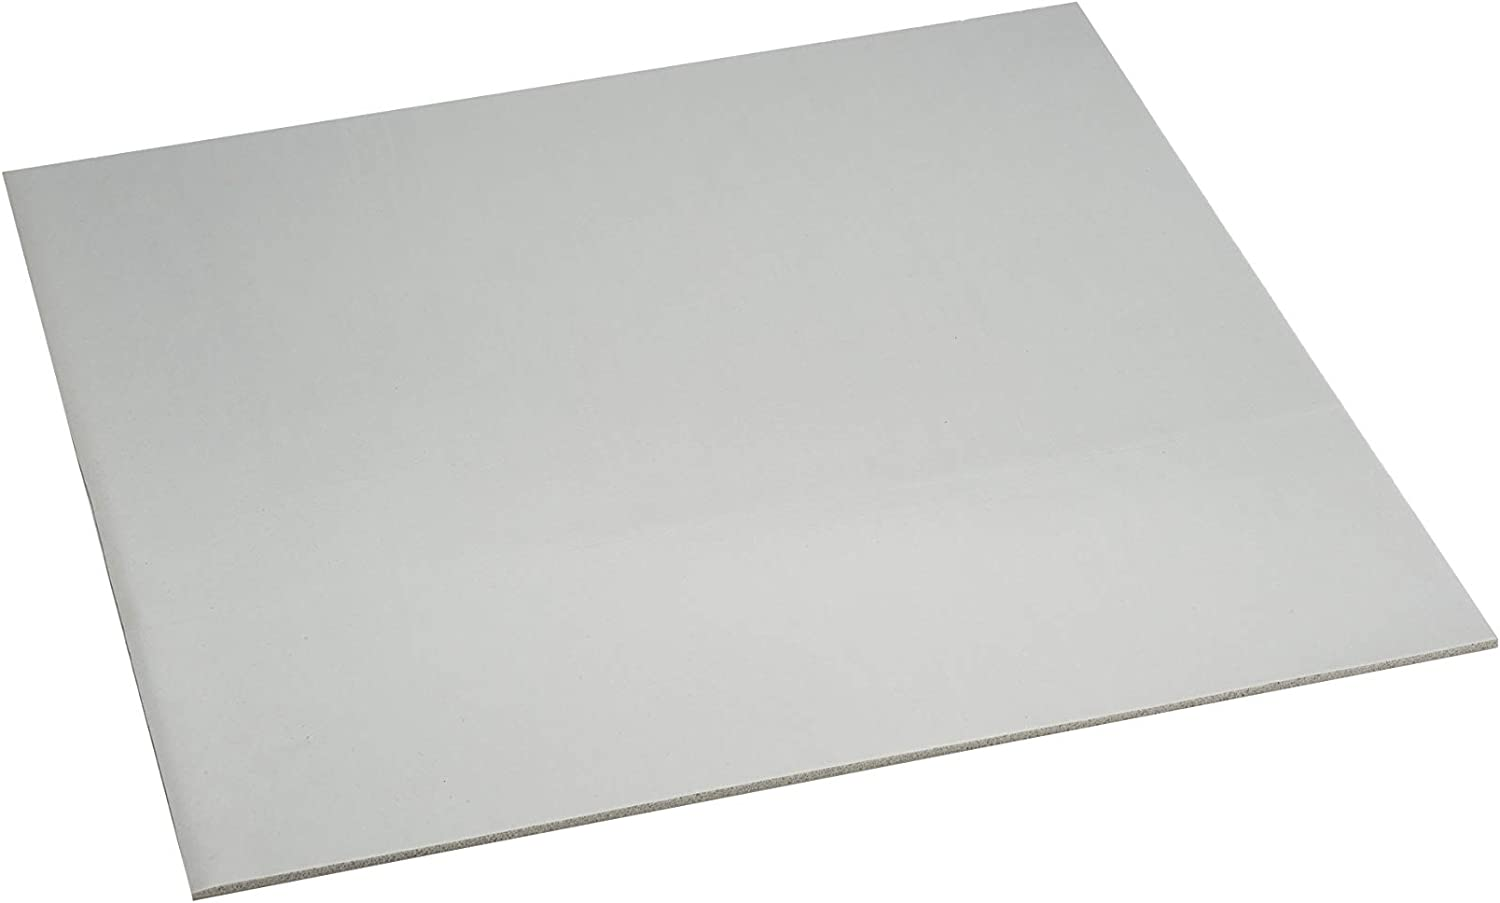 etc Metal Wood Gray Silicone Foam Heat Conductive Pad for Dye Sublimation of Tile - 1//8 Thickness Porcelain 16 x 20 Glass Cutting Boards